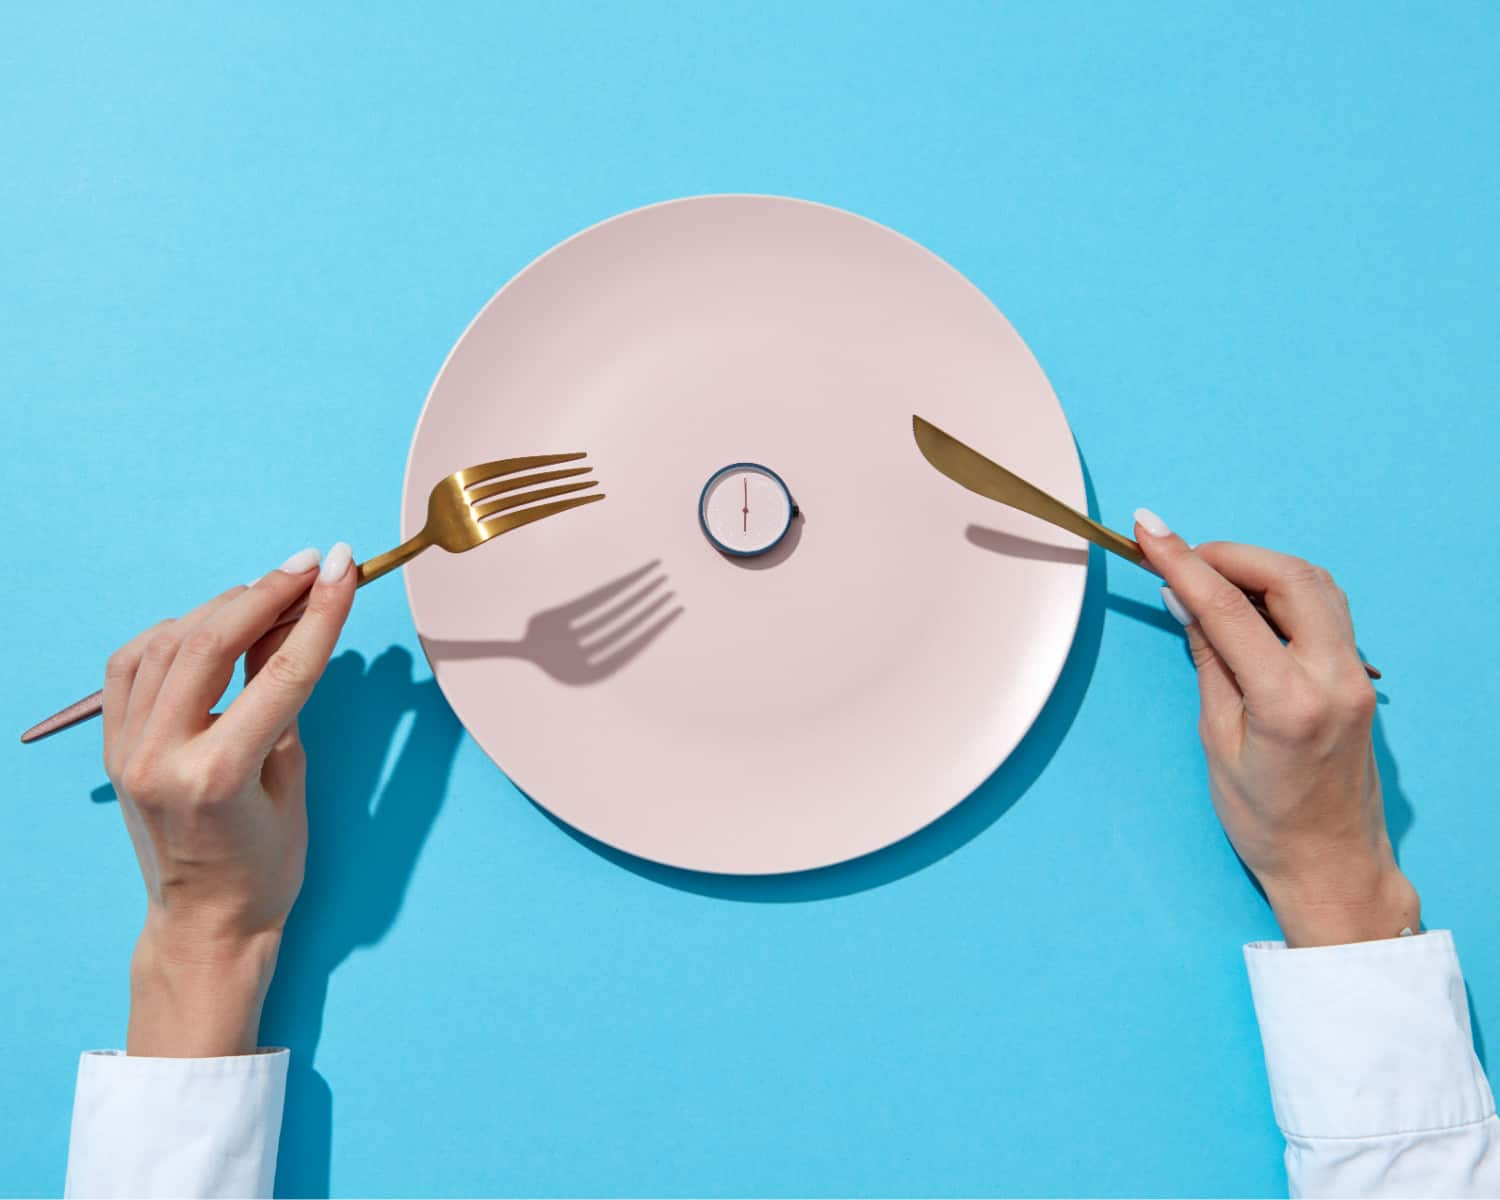 Photo of an empty plate, with a small clock sitting on the centre of the plate. To represent fasting.